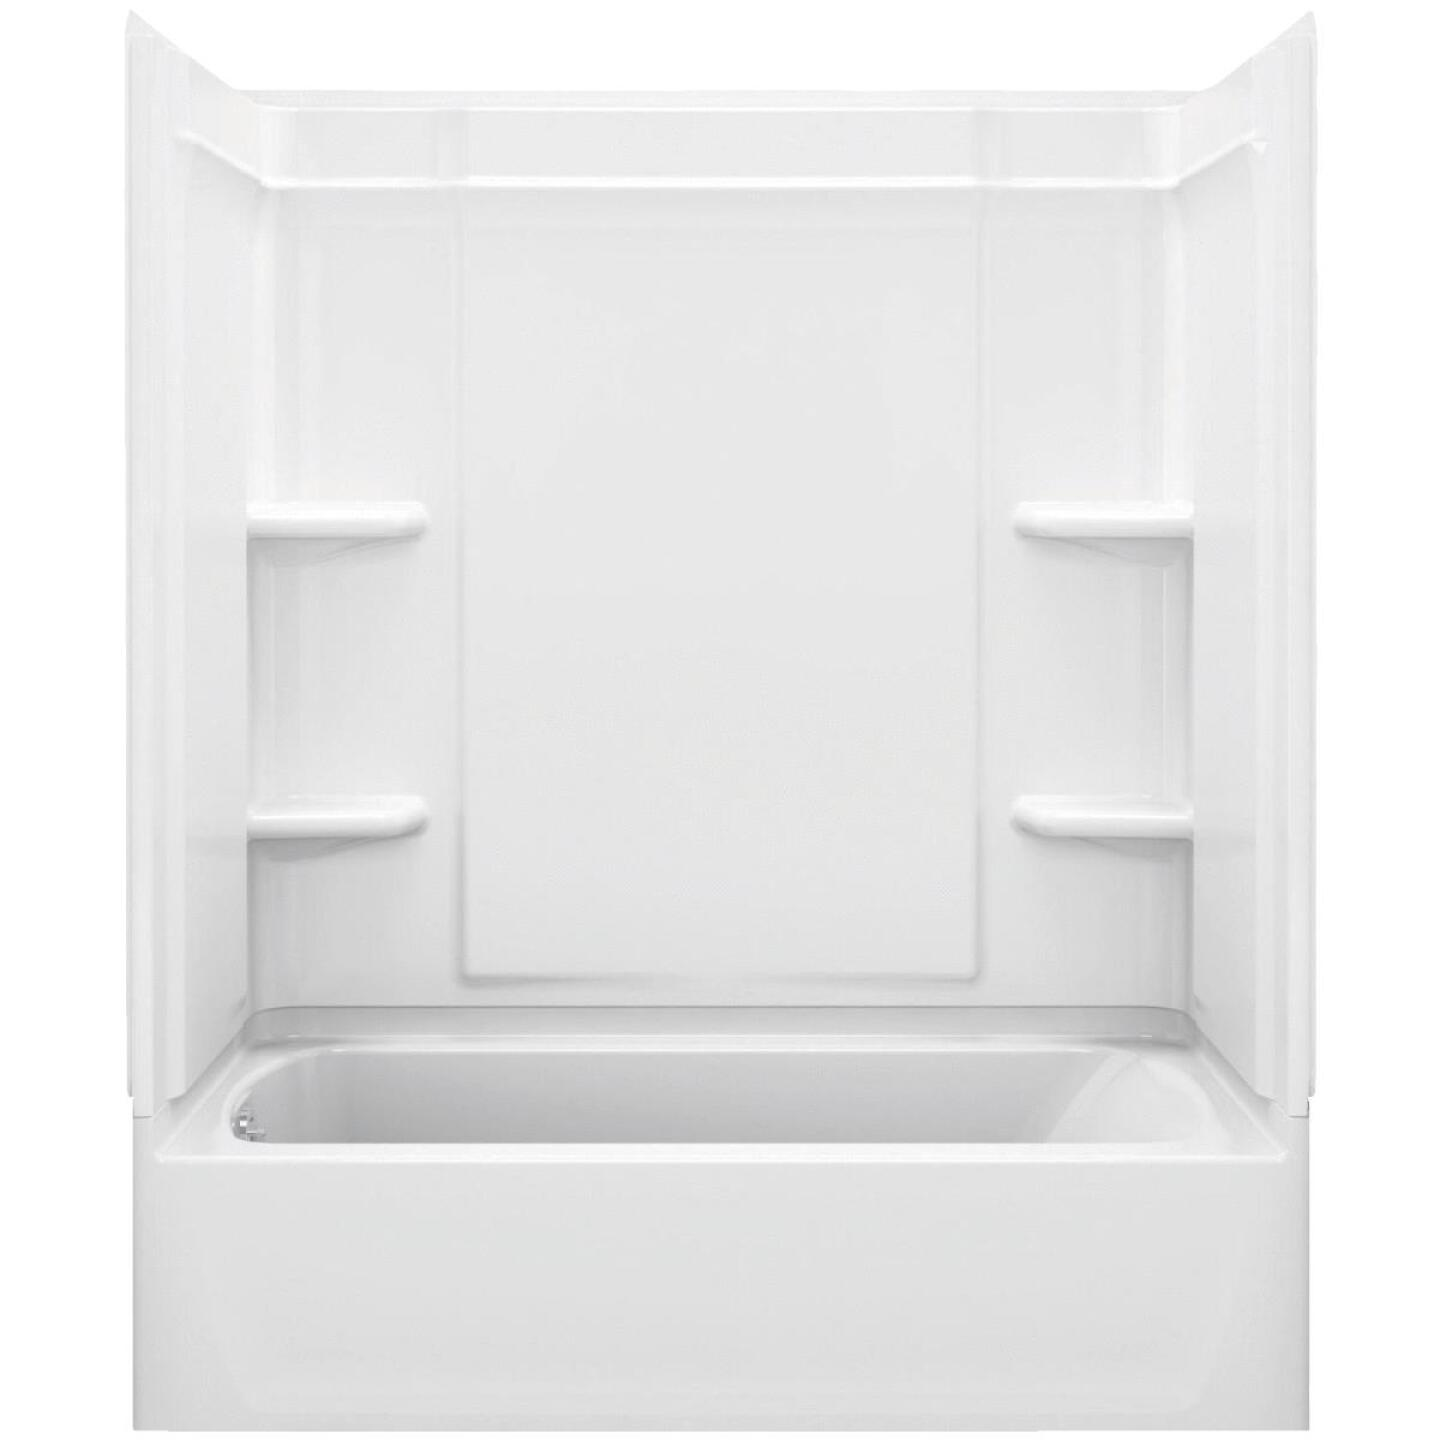 Sterling Medley 3-Piece 60 In. L x 30 In. W x 73 In. H Tub Wall Kit in White Image 1